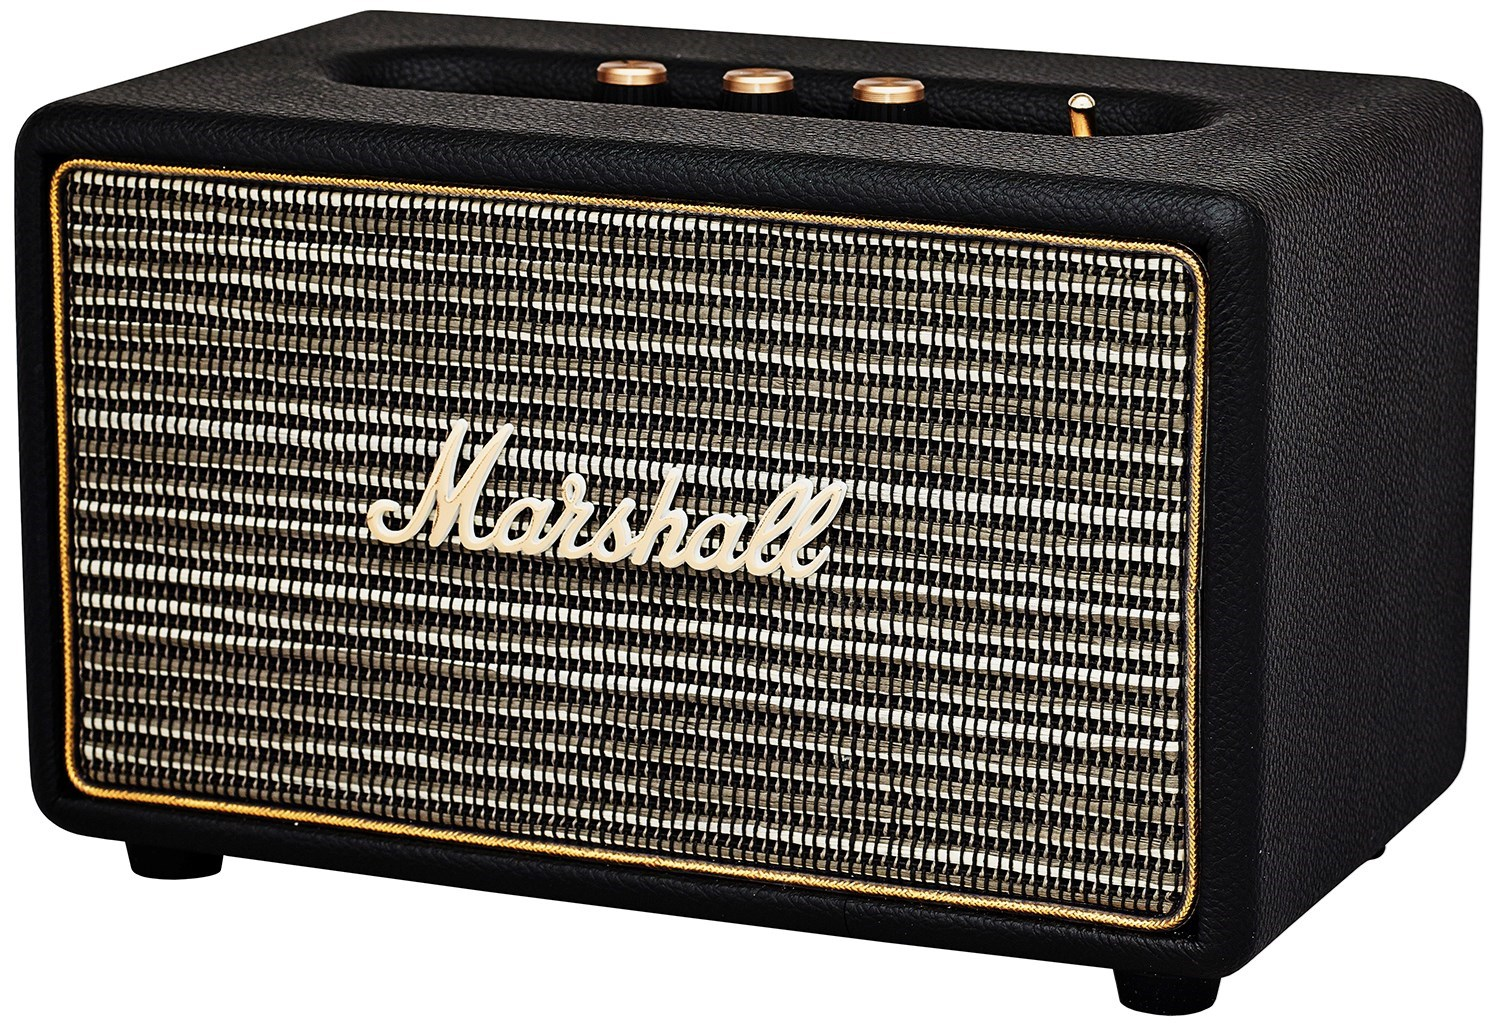 Marshall Acton BT - Black - Tuff högtalare med Bluetooth 7a4658b54ff06